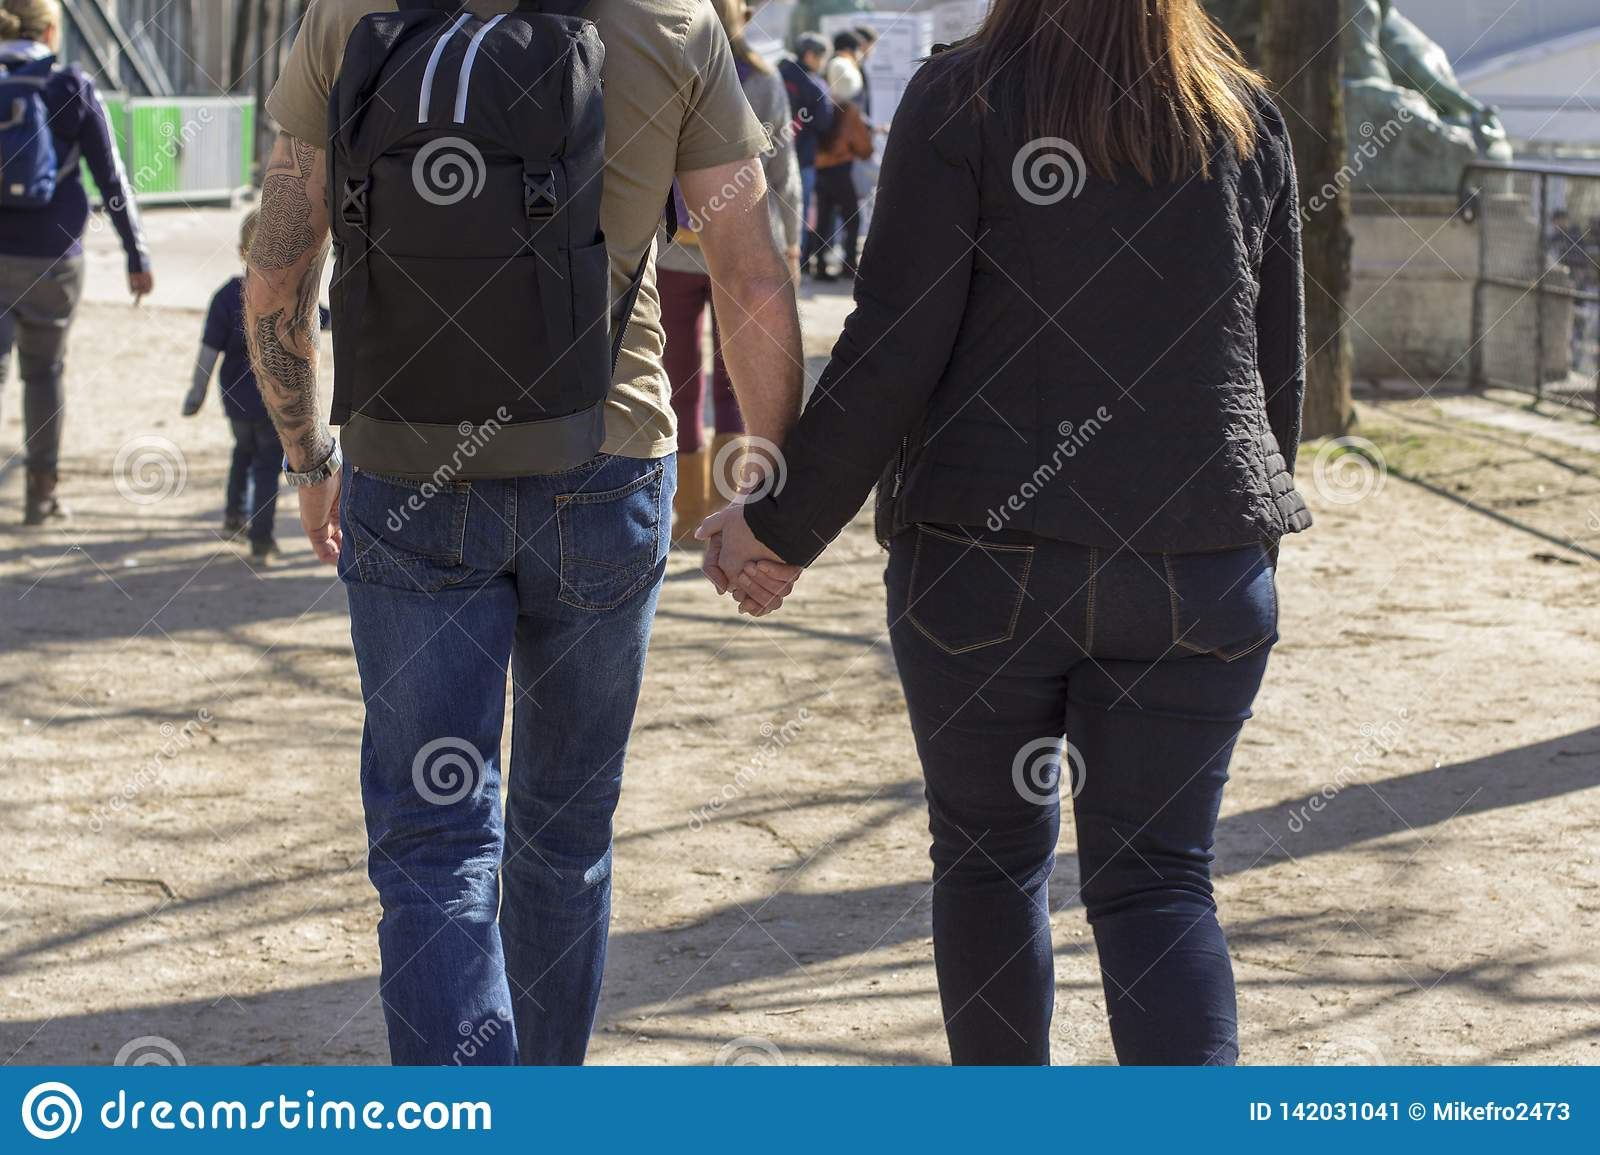 Skinny man holds the hand of a woman while walking